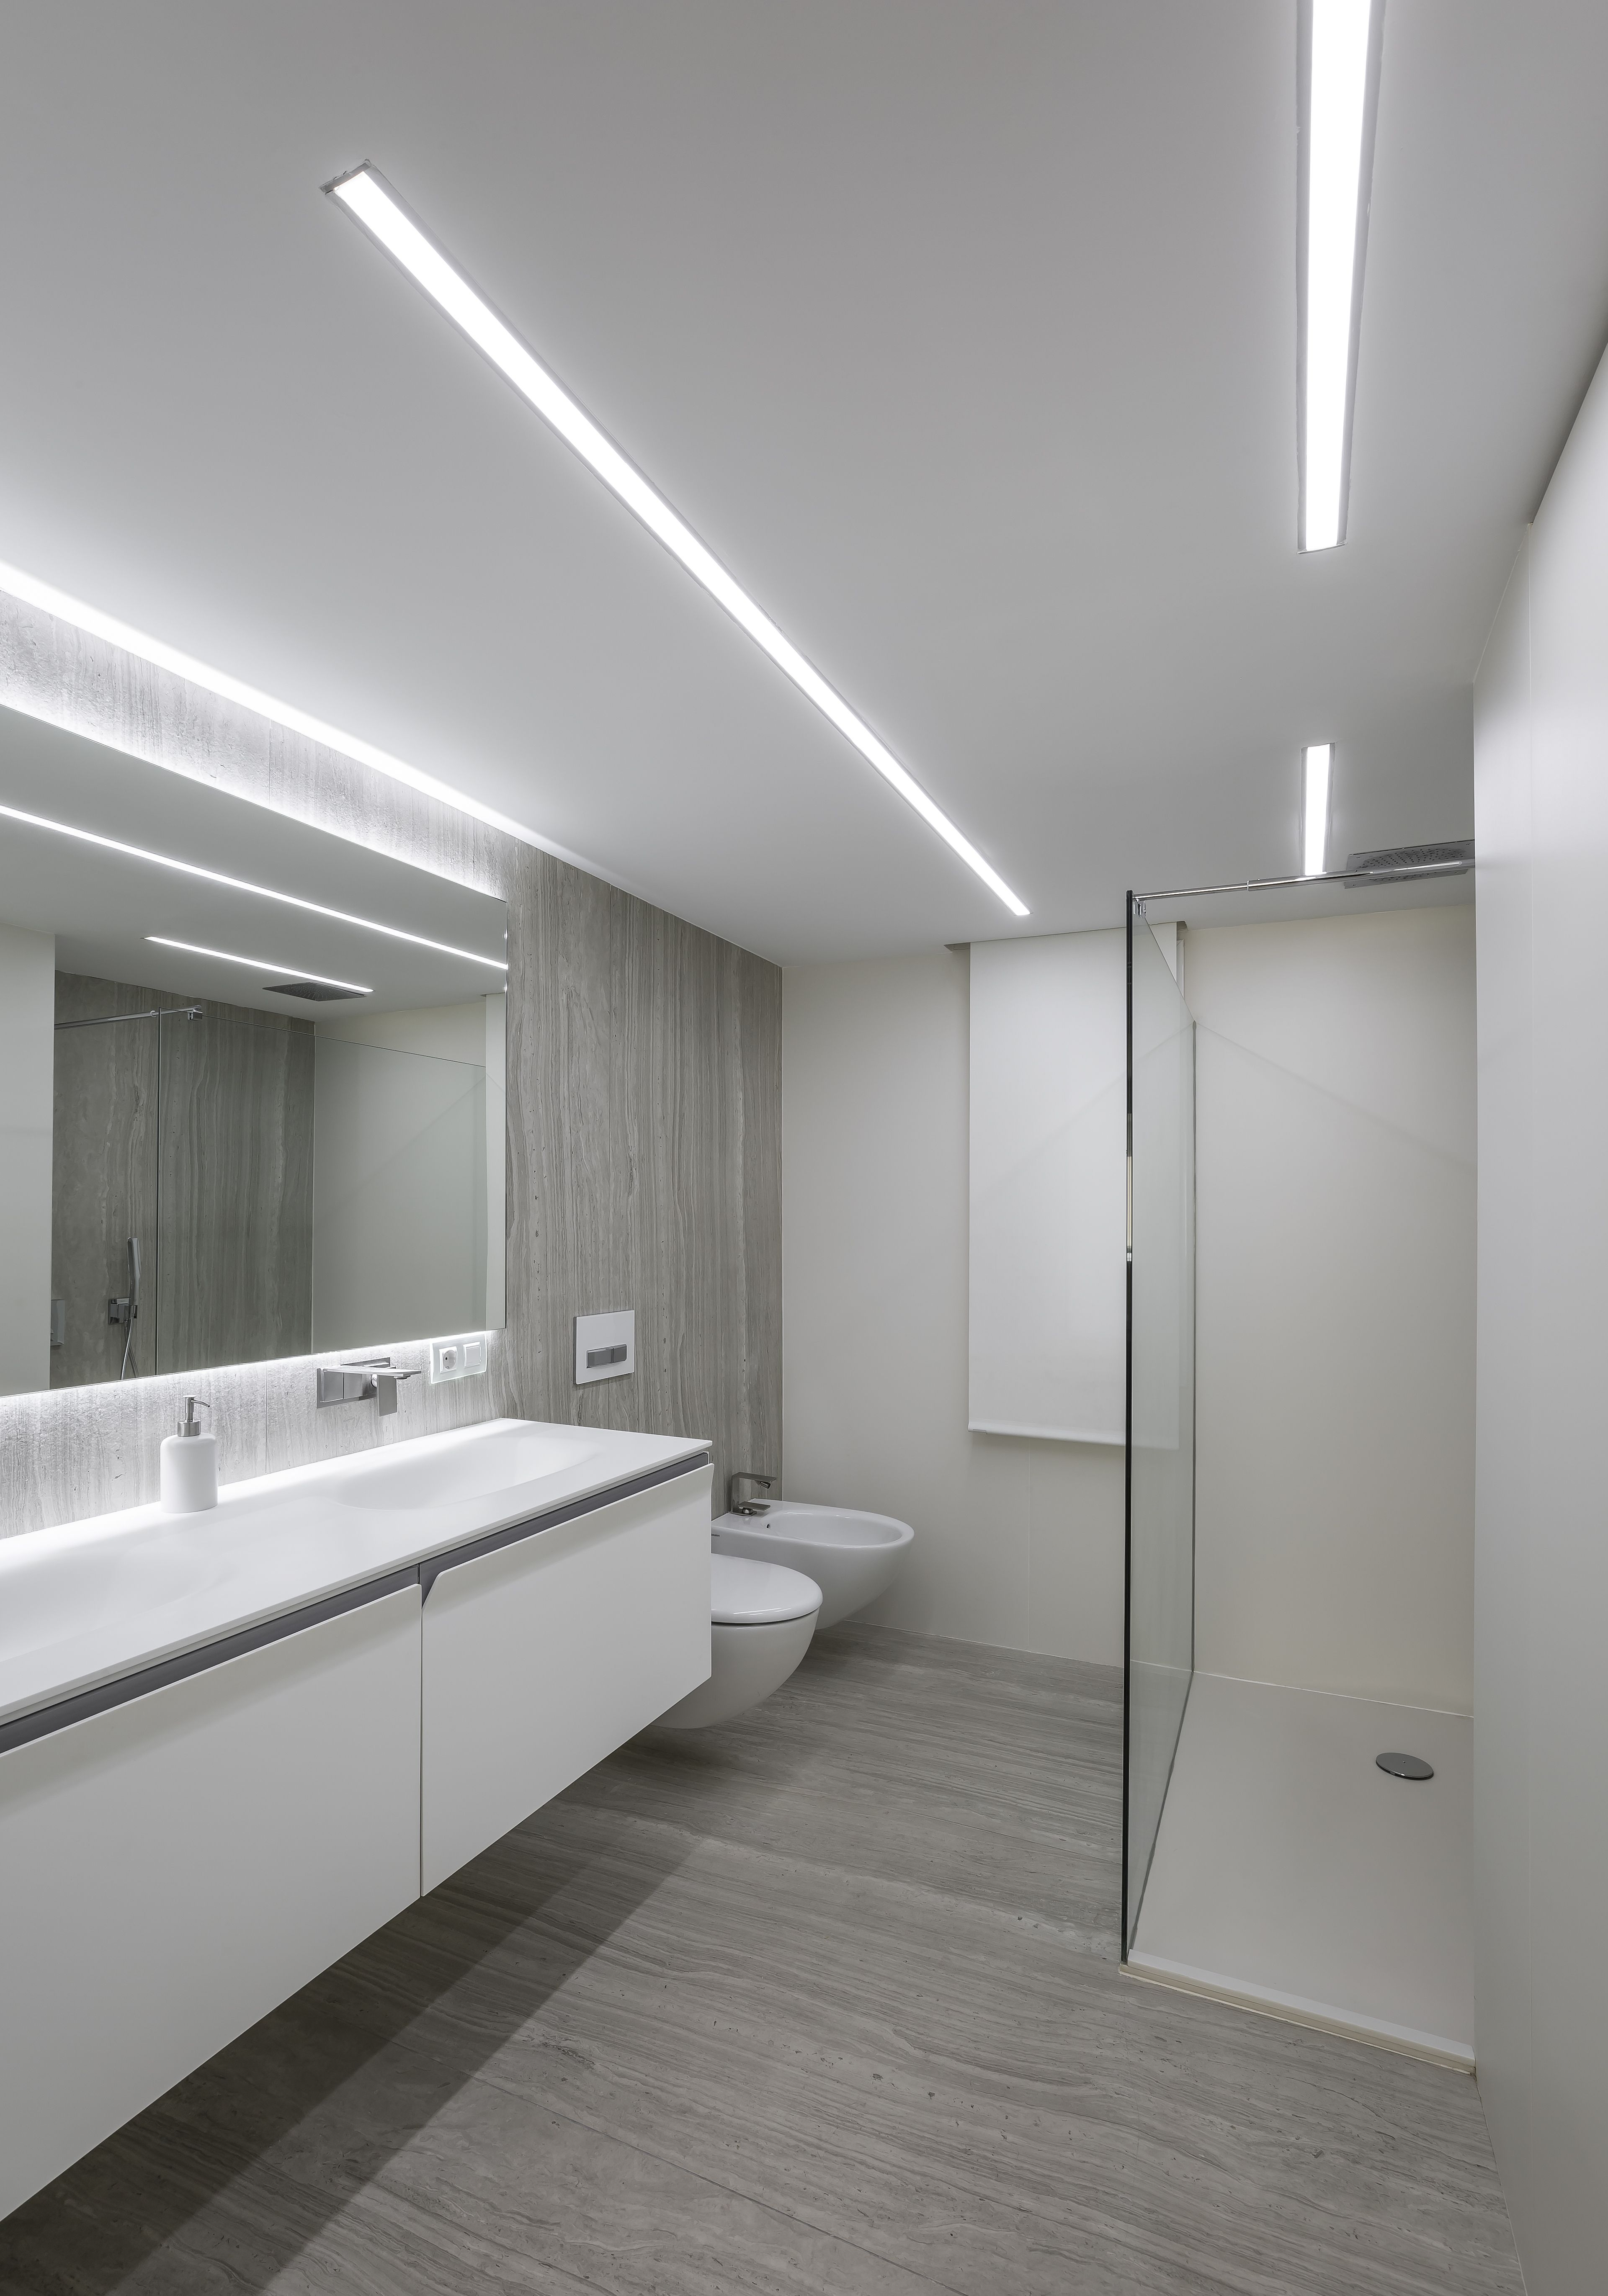 For Its Innovative Design Quality And Versatility Neolith Strata Argentum Is Integrated Into The Bathroom Of The Main Room Of This Central Ho Beleuchtung Haus